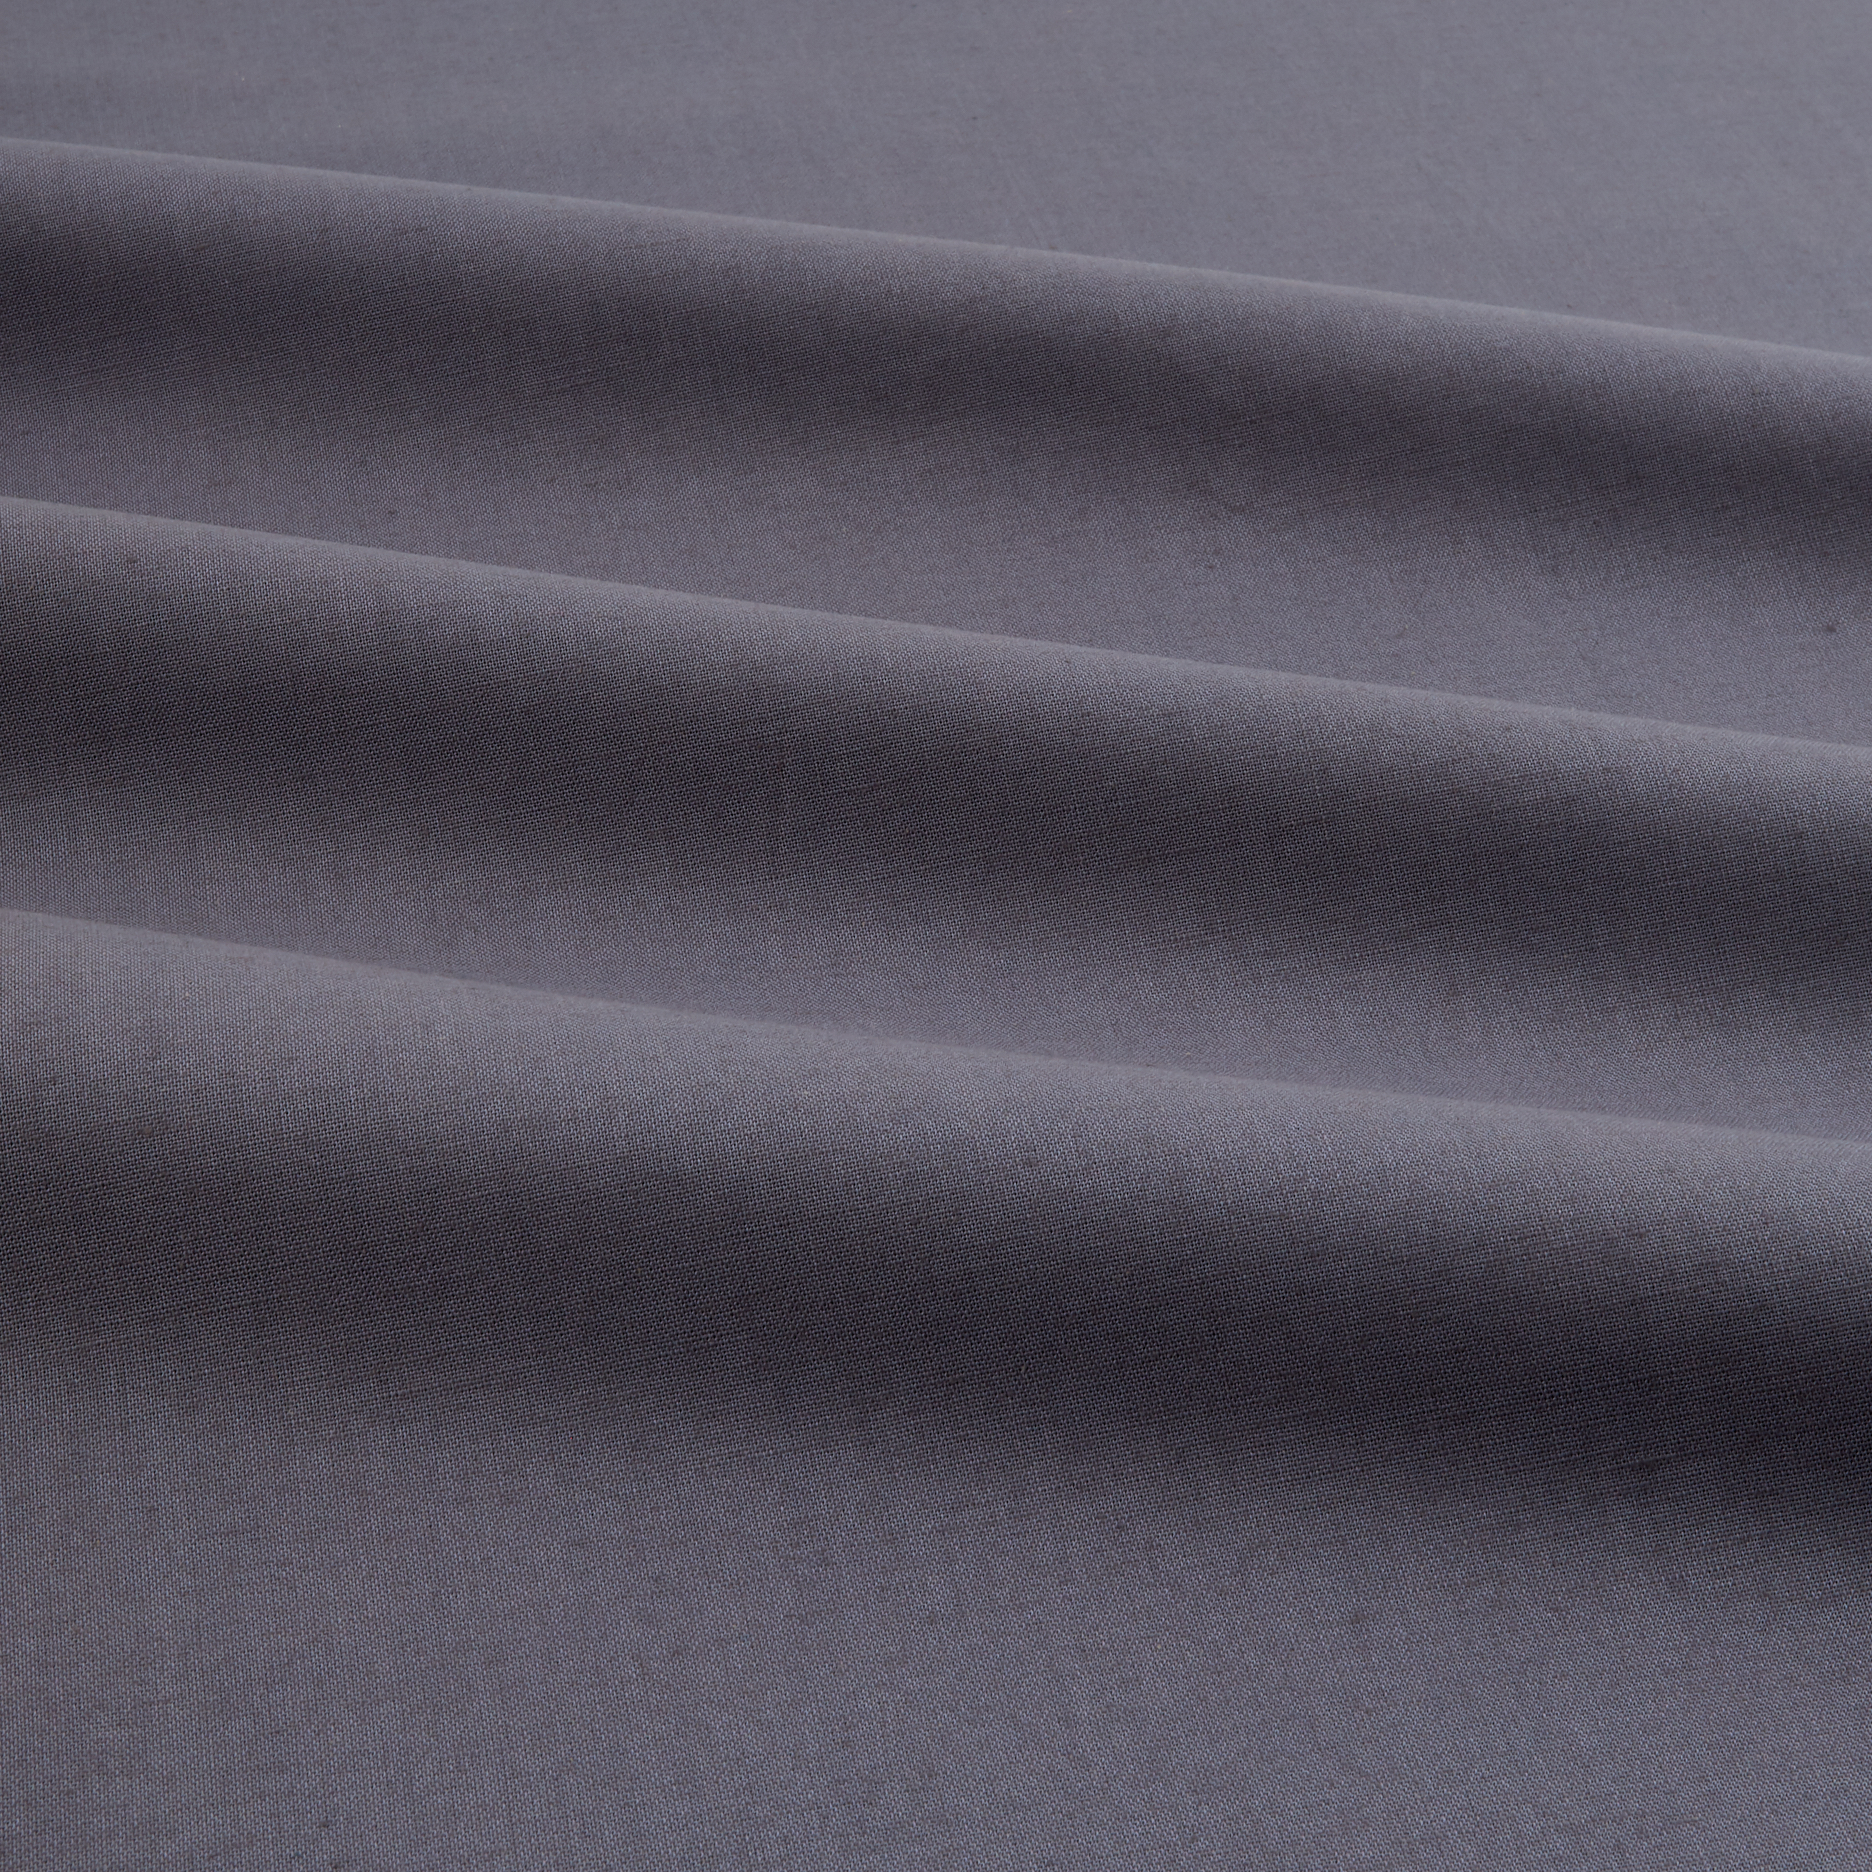 Image of Kona Cotton Steel Fabric